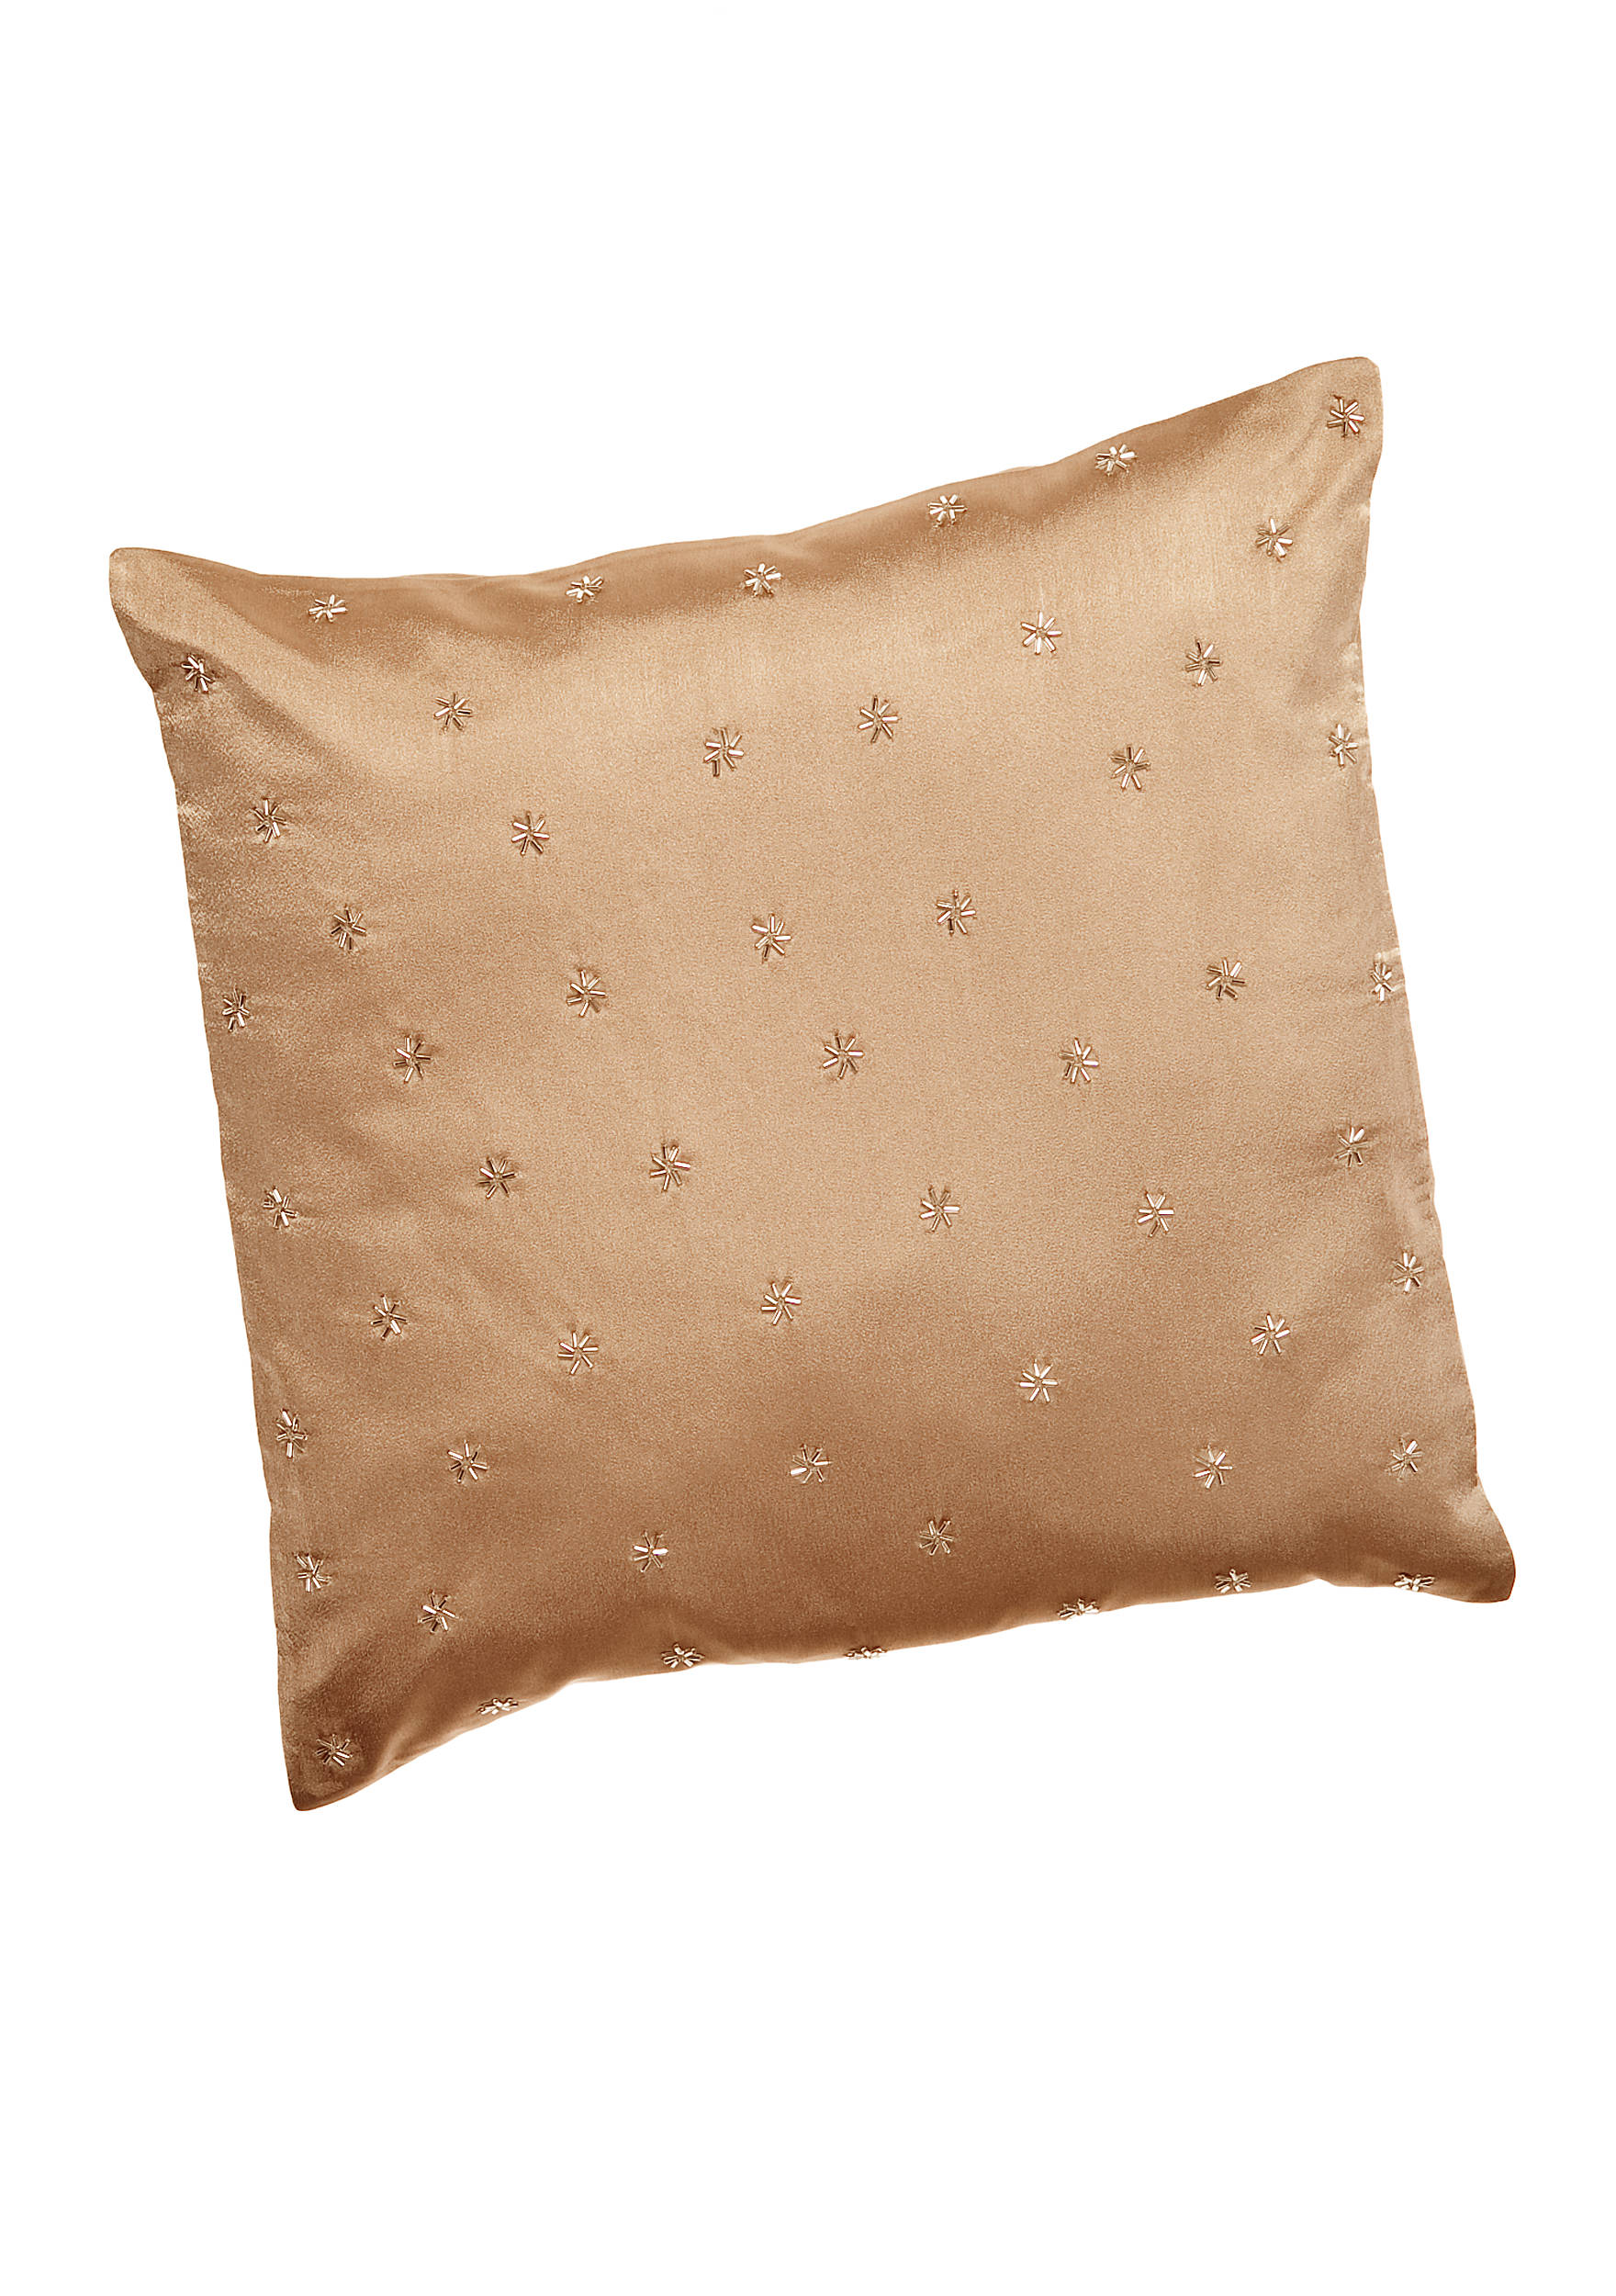 Stupendous Calvin Klein Champagne Sand Beaded Stars Decorative Pillow 18 In X 18 In Andrewgaddart Wooden Chair Designs For Living Room Andrewgaddartcom